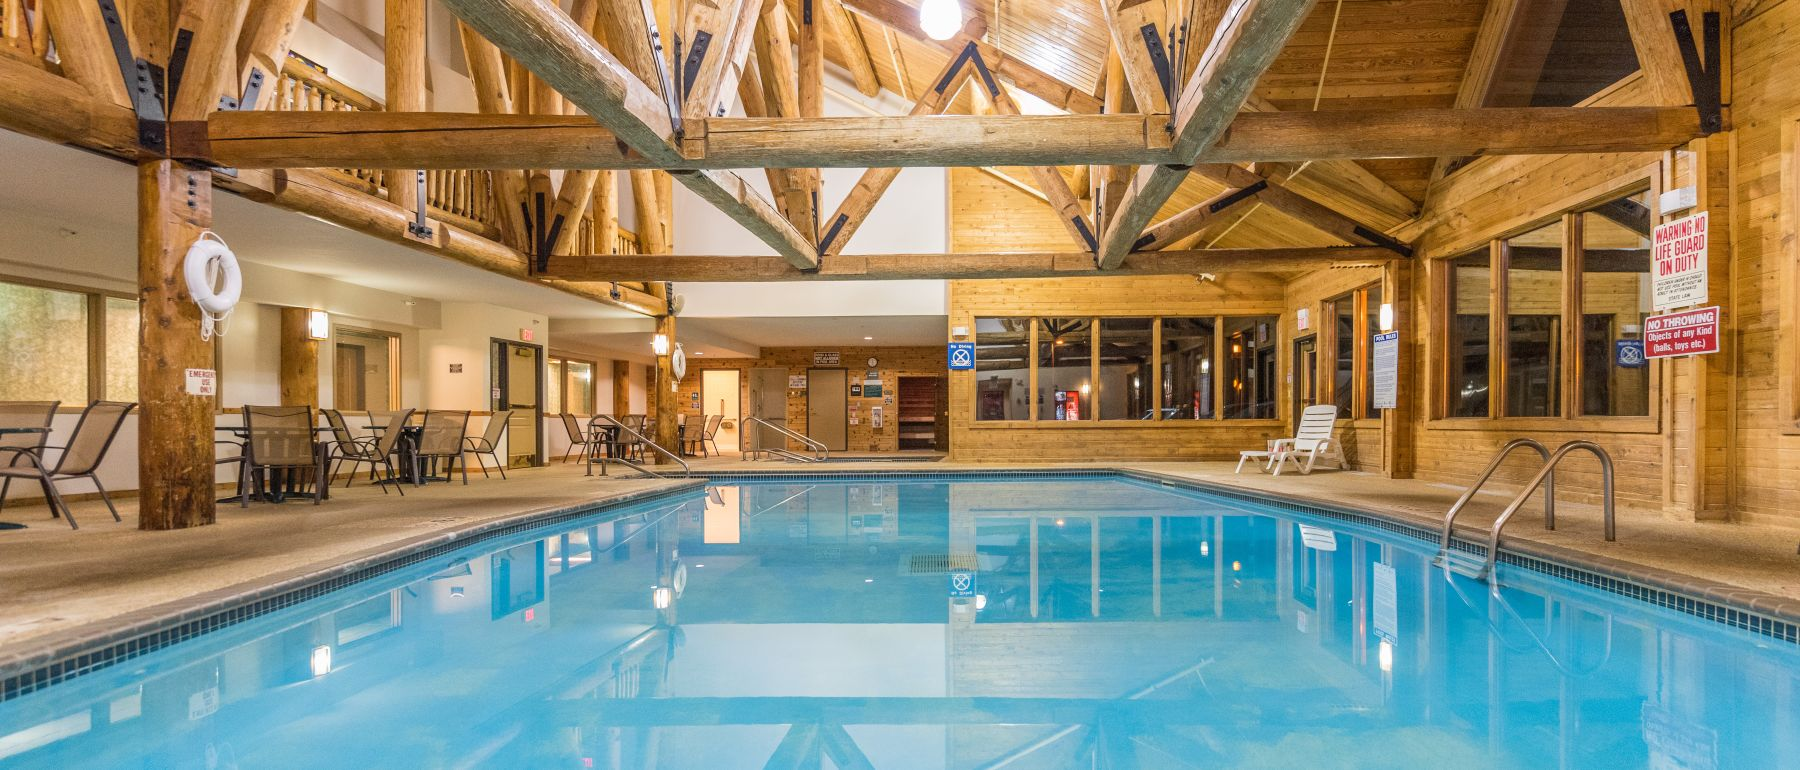 Indoor Pool at Grand Ely Lodge